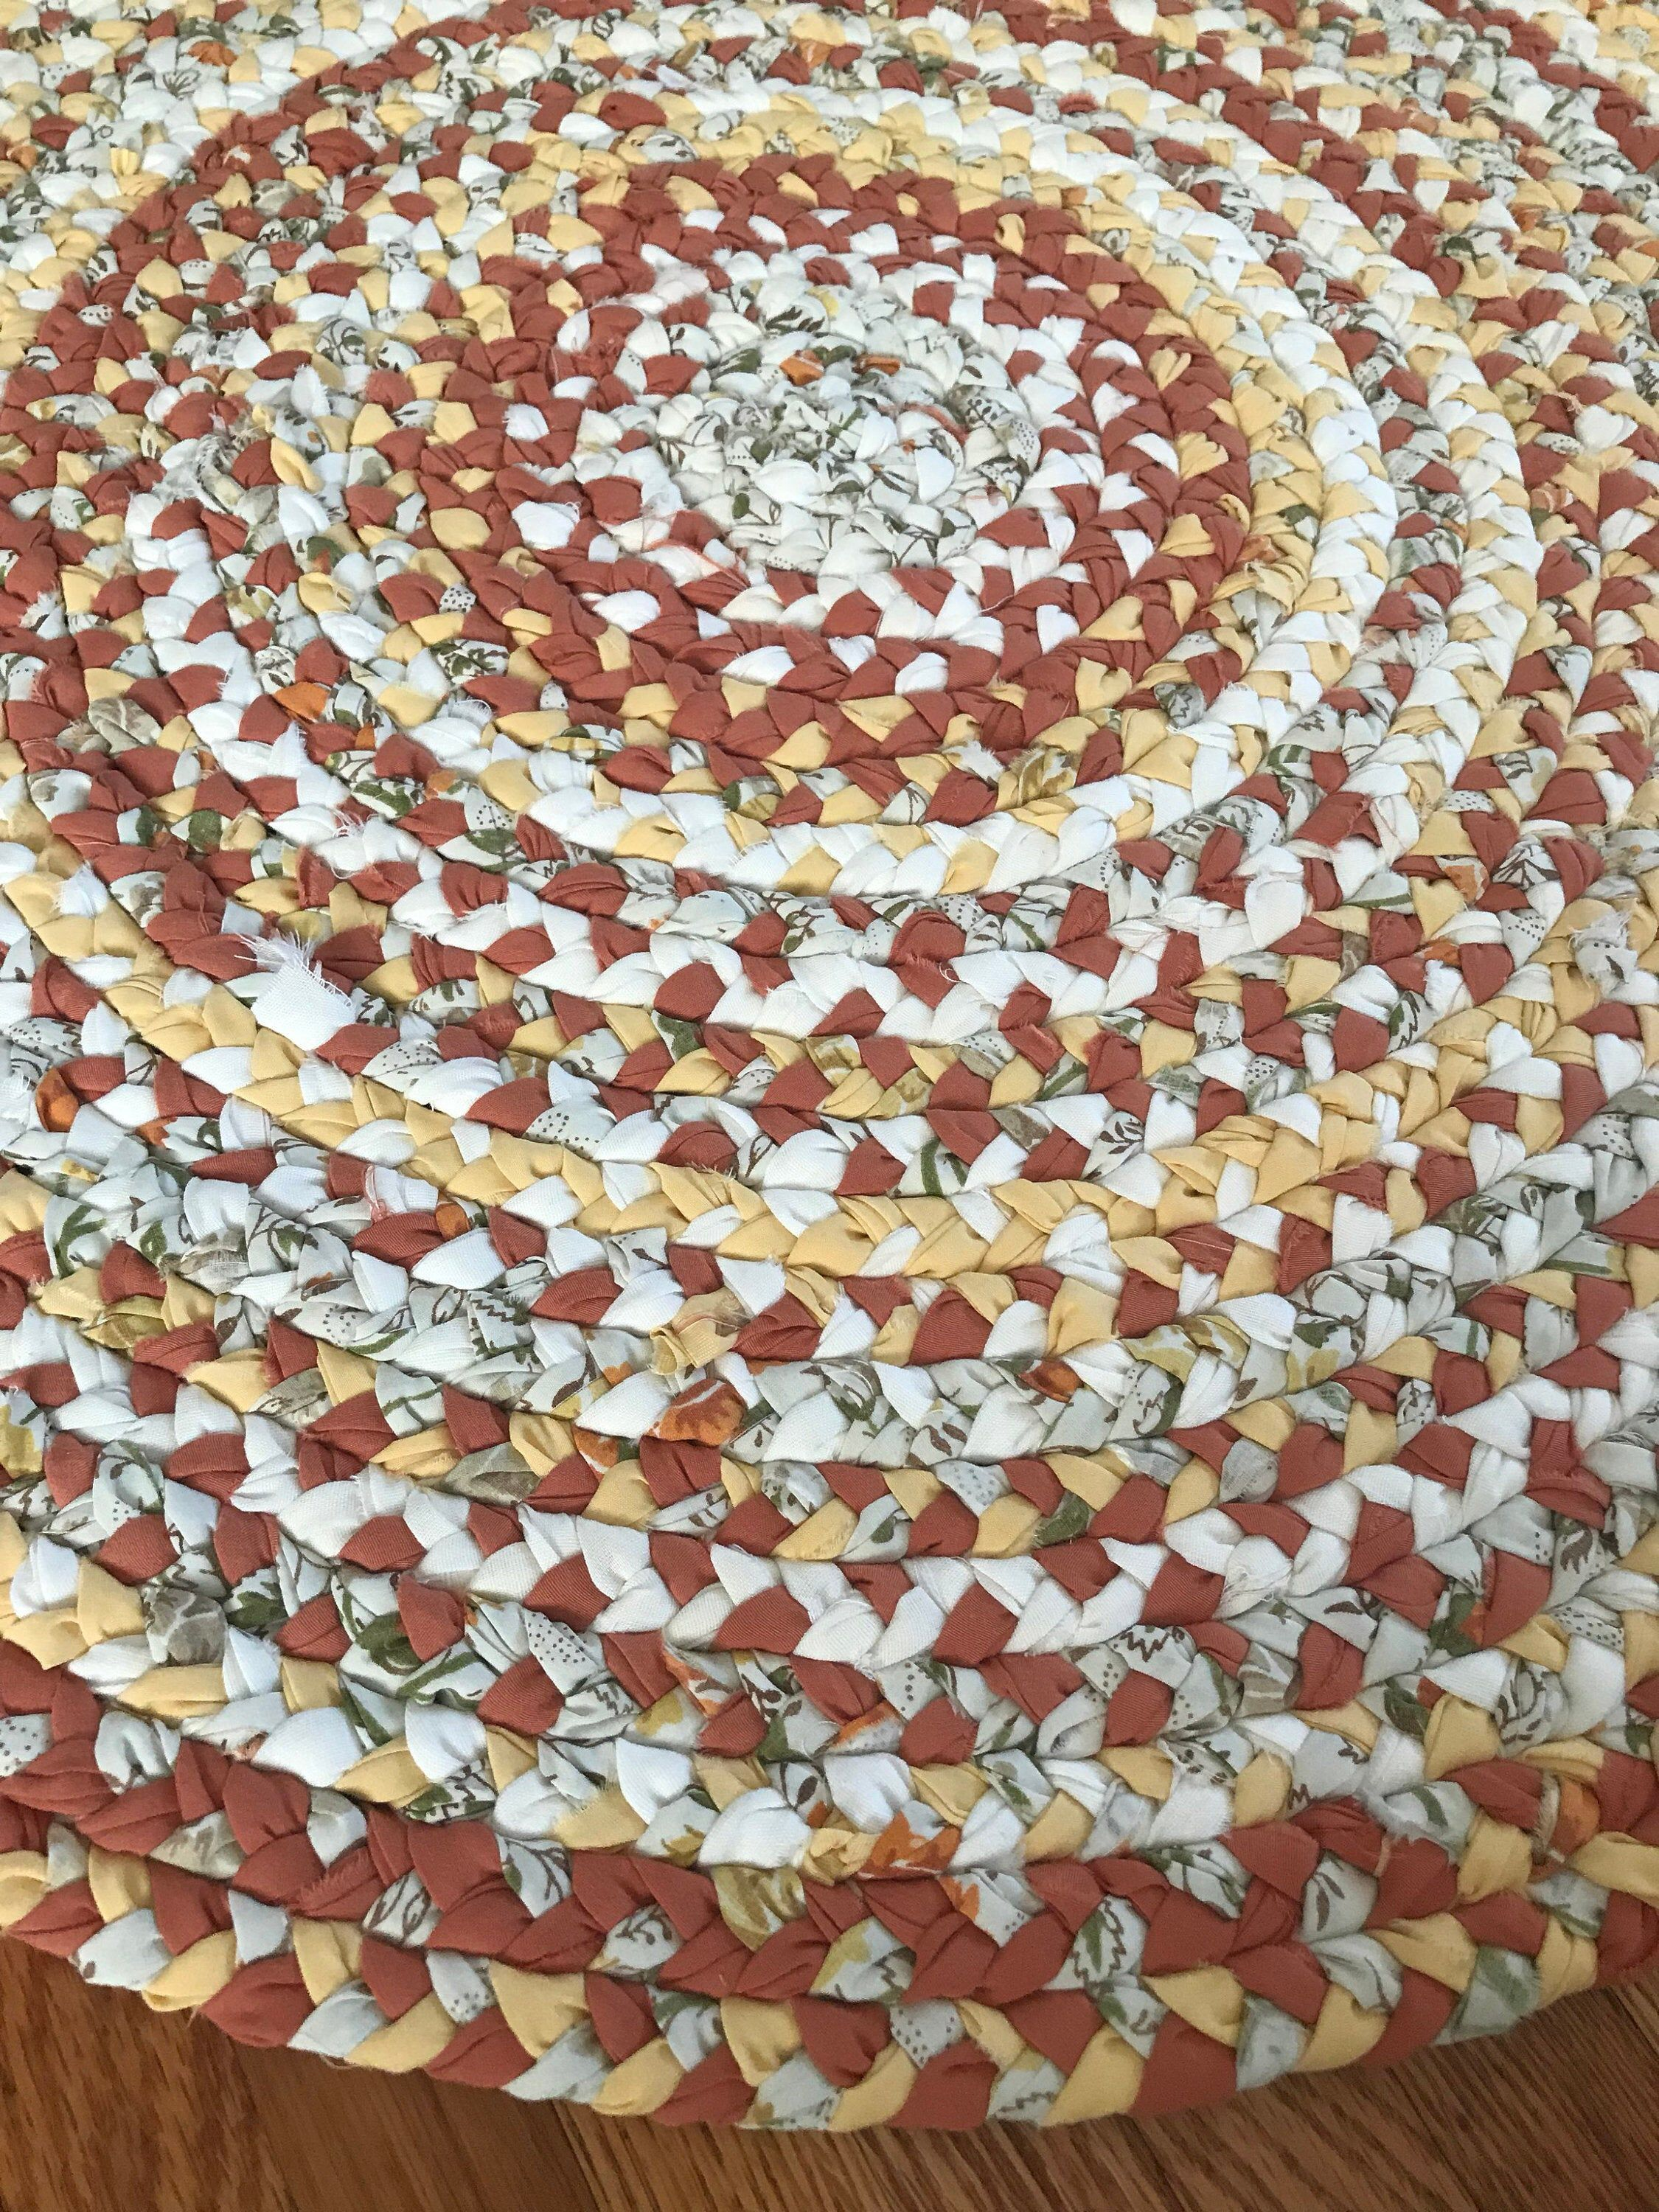 Braided Braided Rugs Diy Fabric Strips Cabin Farmhouse Handmade Rag Rug Throw Upcycled In 2020 Handmade Rag Rug Rag Rug Cabin Rugs